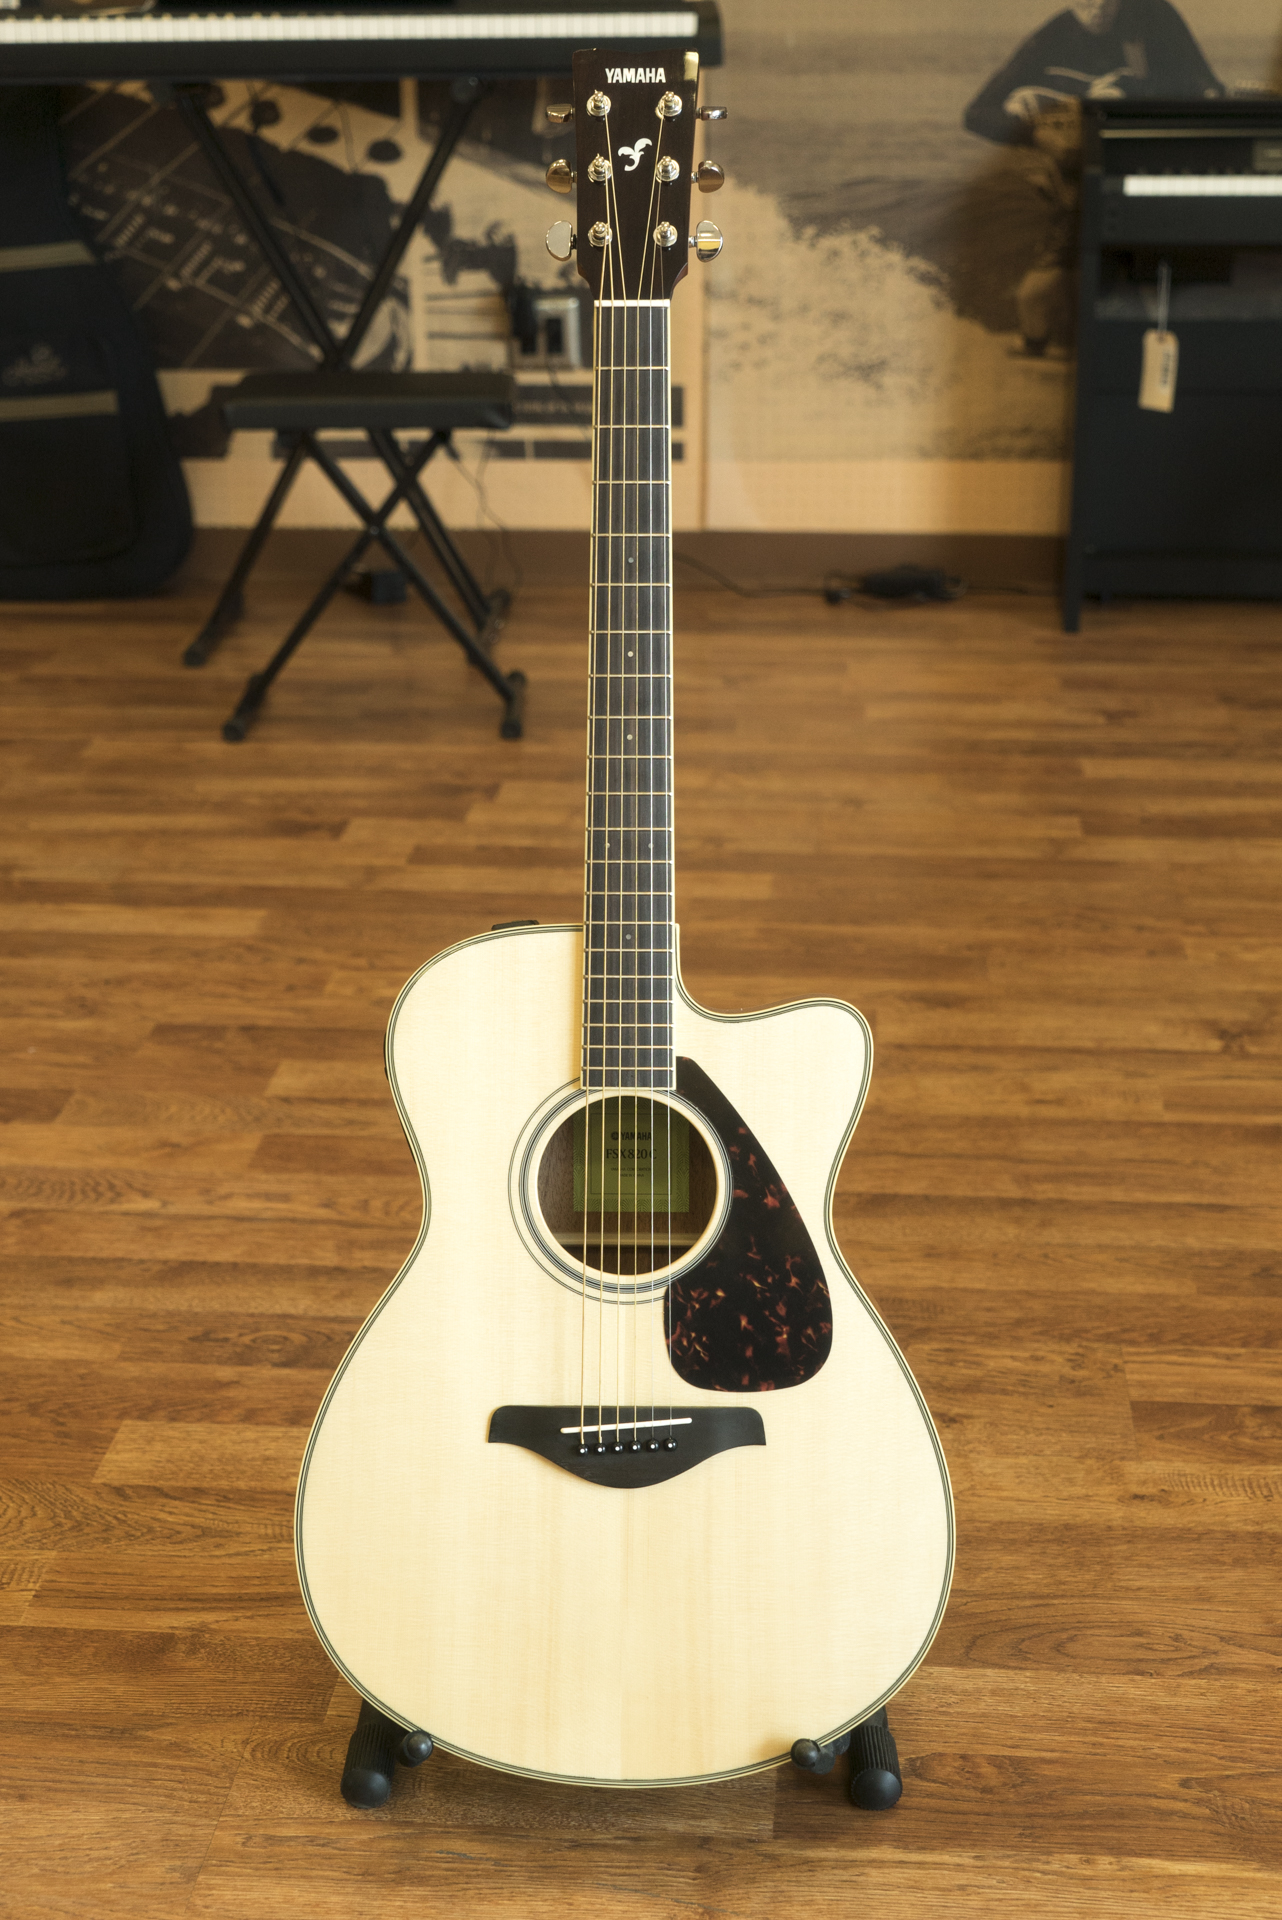 Yamaha fsx820c solid top small body acoustic electric for Yamaha solid top